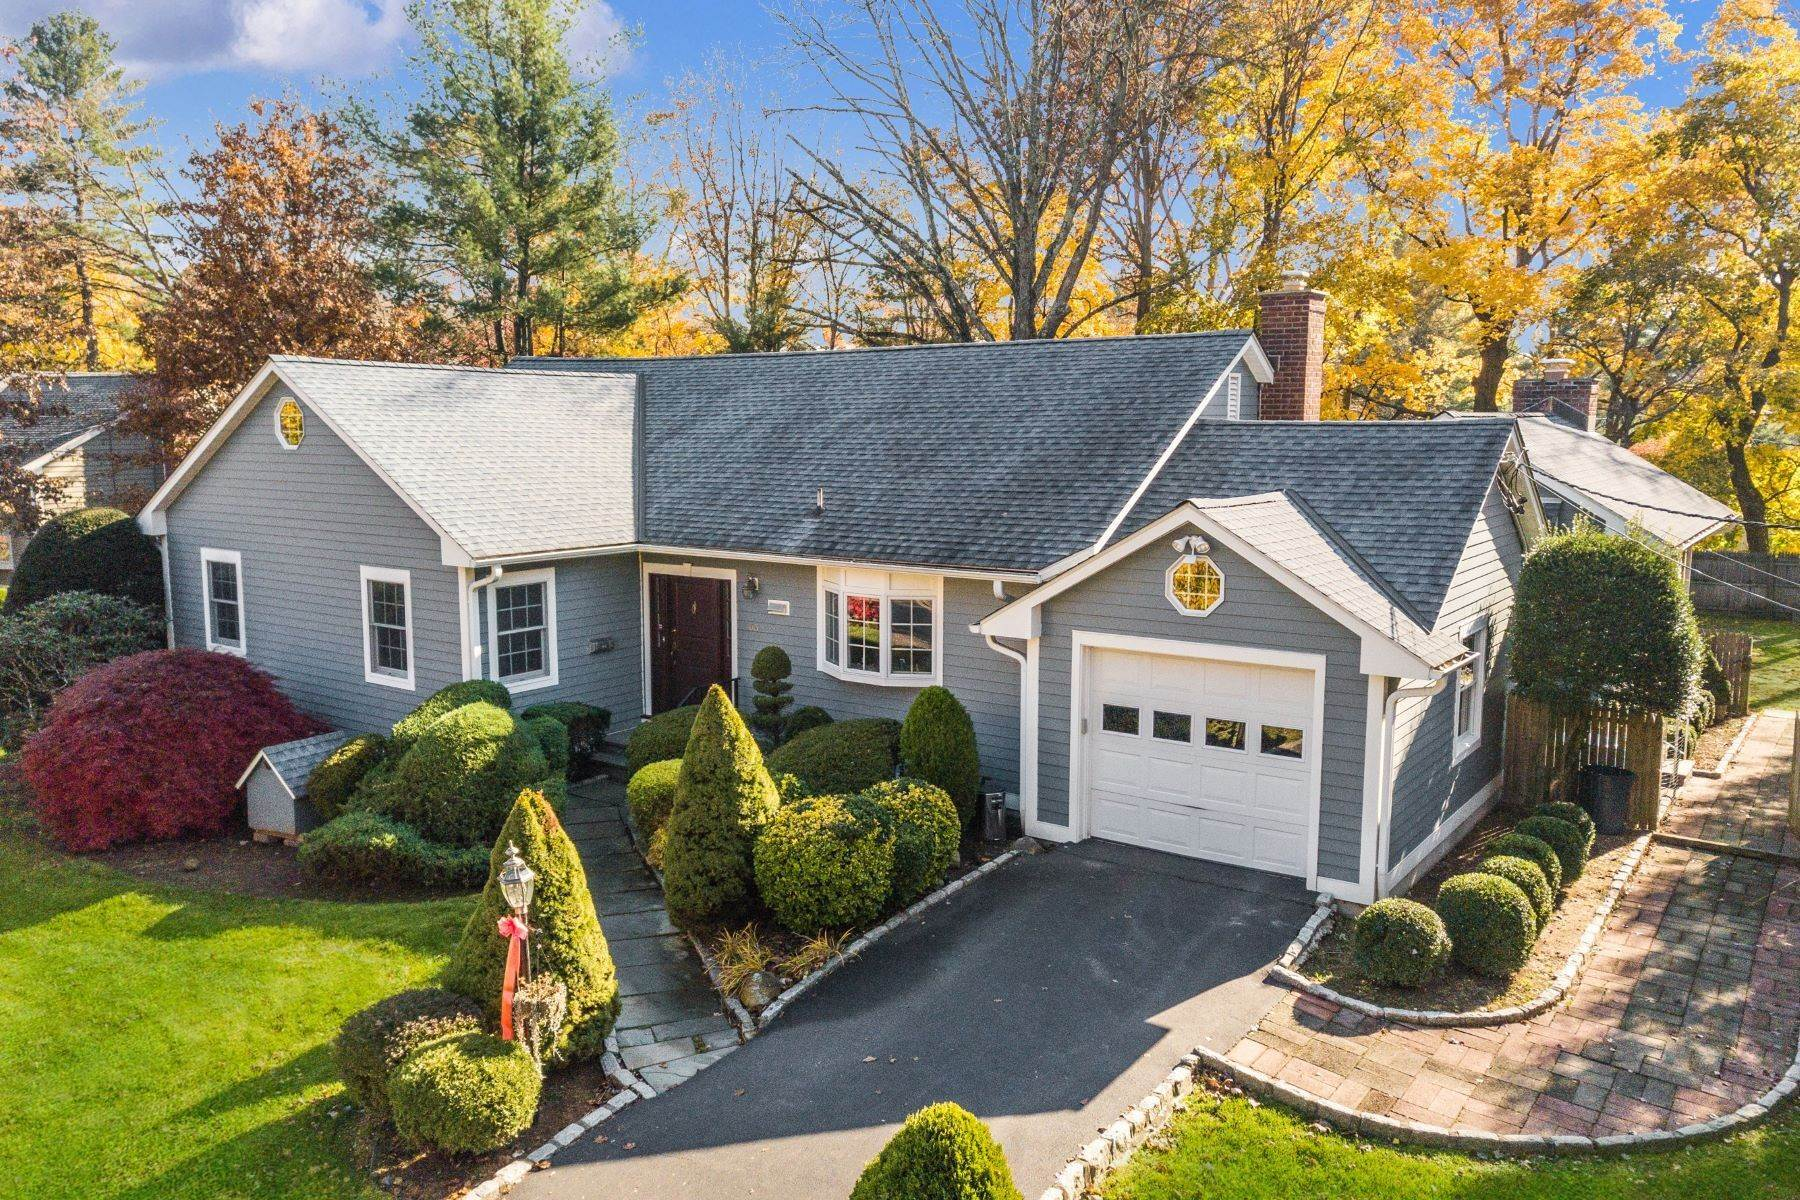 Single Family Homes for Sale at 65 Windingwood Road S Rye Brook, New York 10573 United States